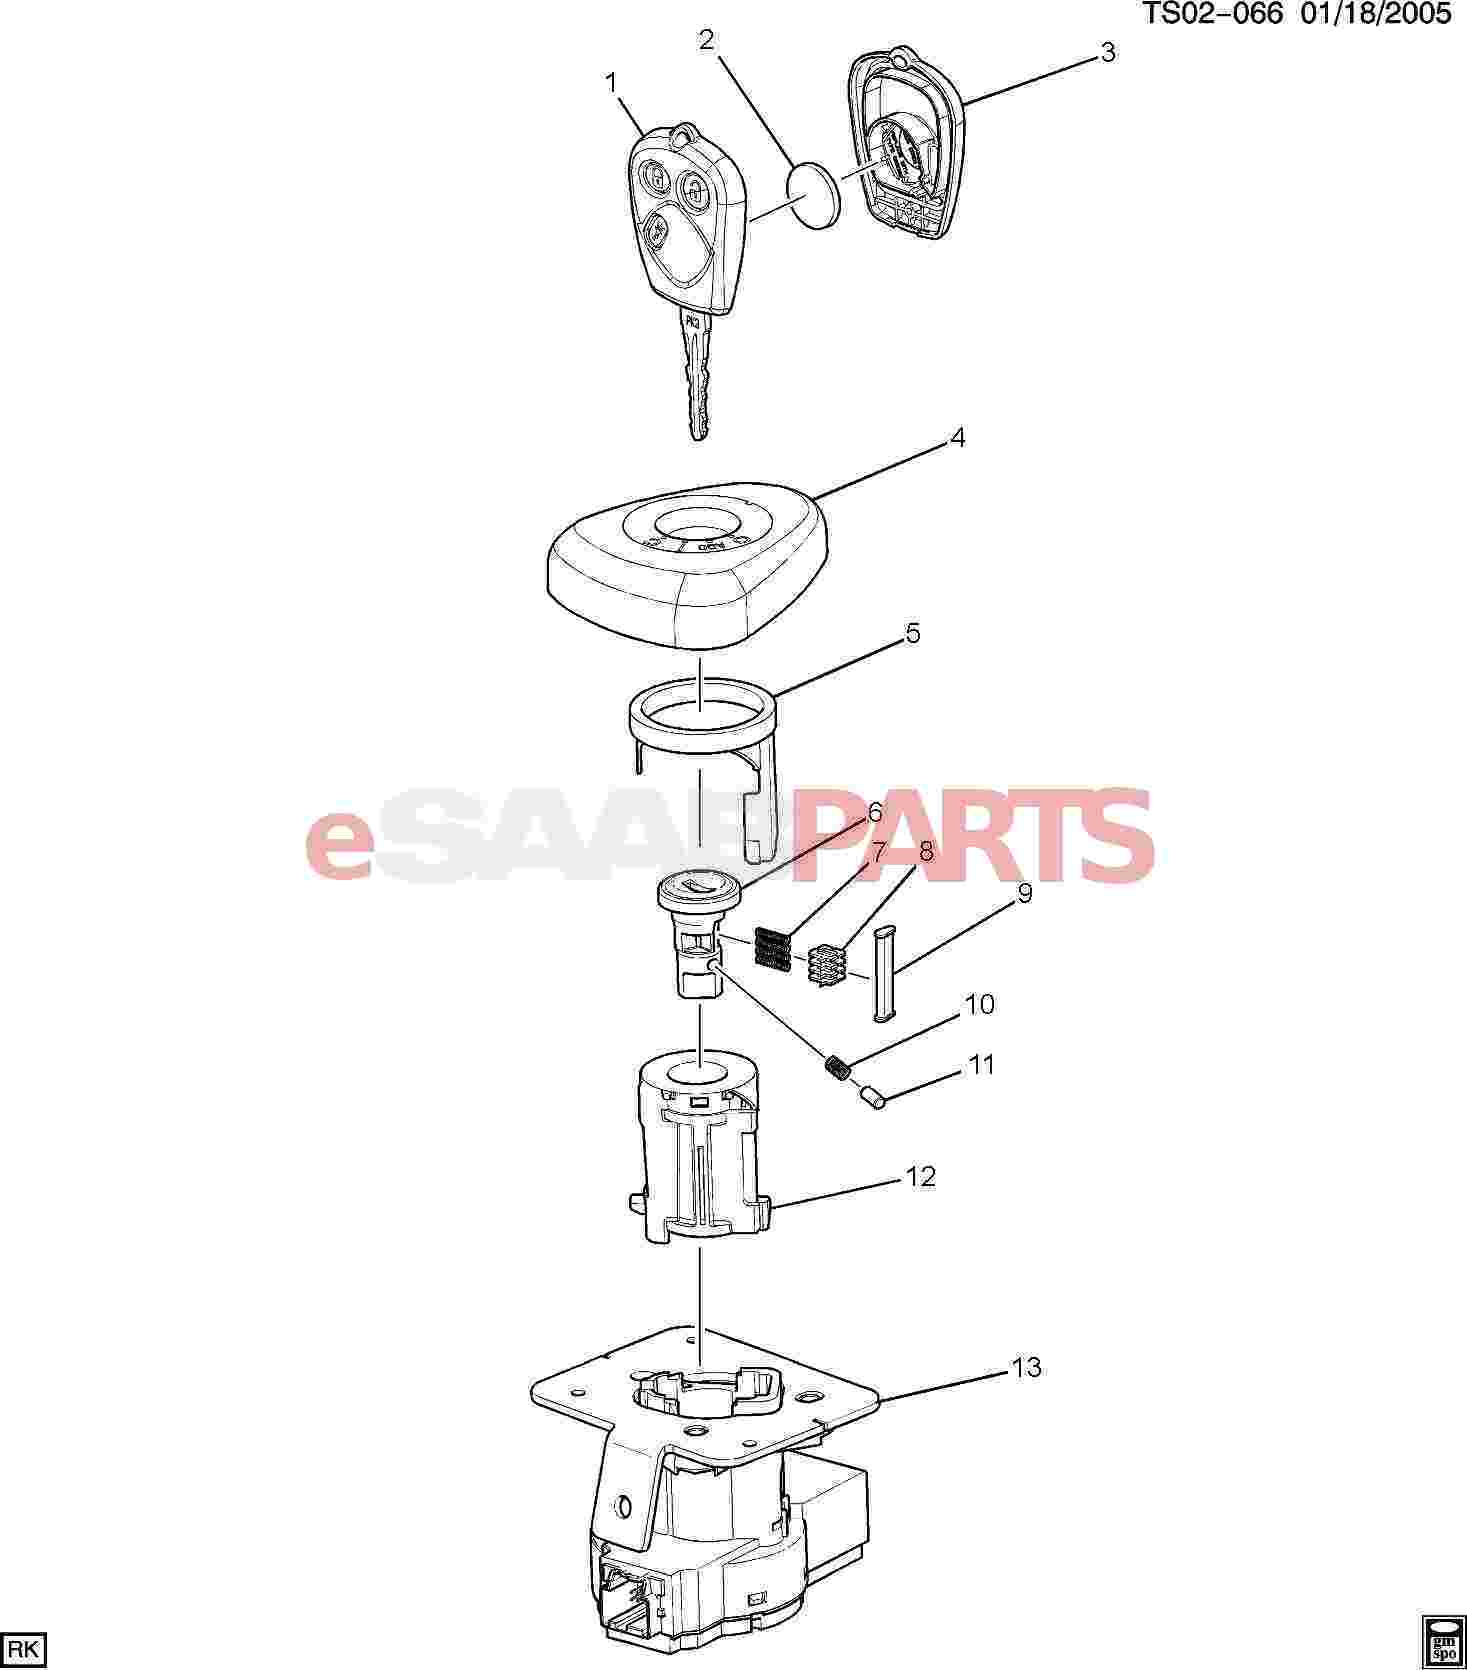 esaabparts com - saab 9-7x > electrical parts > ignition components > key &  lock cylinders/ignition